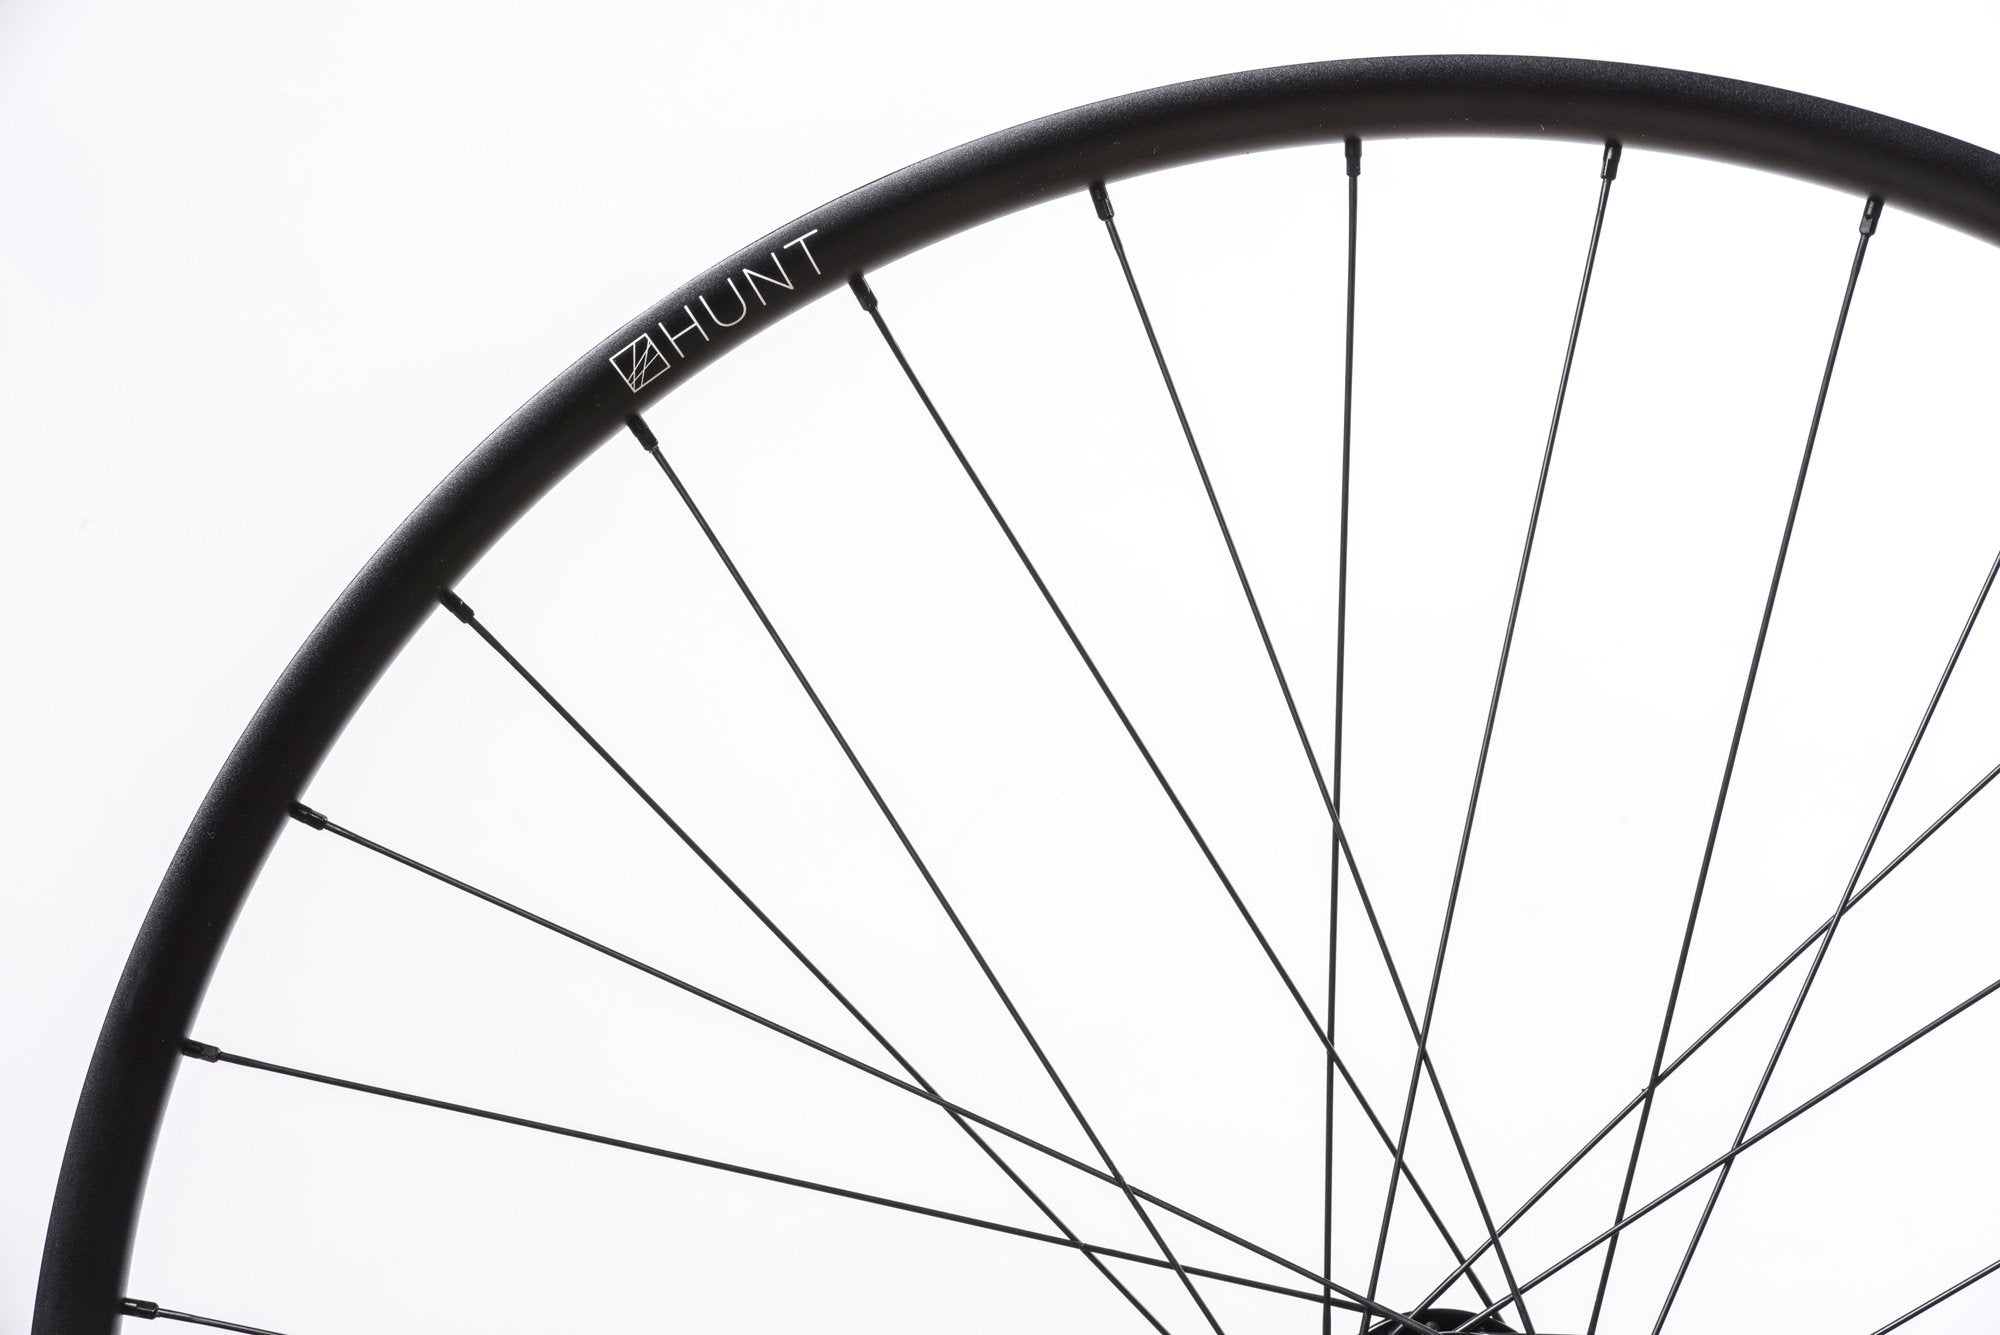 "<html><h1>Rims</h1><i>The Search 29 rim includes details which are high on the durability factor to make sure you finish every ride with a big grin. The 6069-T6  (+69% tensile strength vs 6061-T6) alloy rim sticks with the wider-is-better mantra. Designed for 2.3""-2.5"" tyres, the wide 30mm (internal) rim provides support to the tyre during hard cornering, landing in a root strewn shoot or when your throttling down a high-speed section and folding a tyre is the last thing you need to happen!</i></html>"